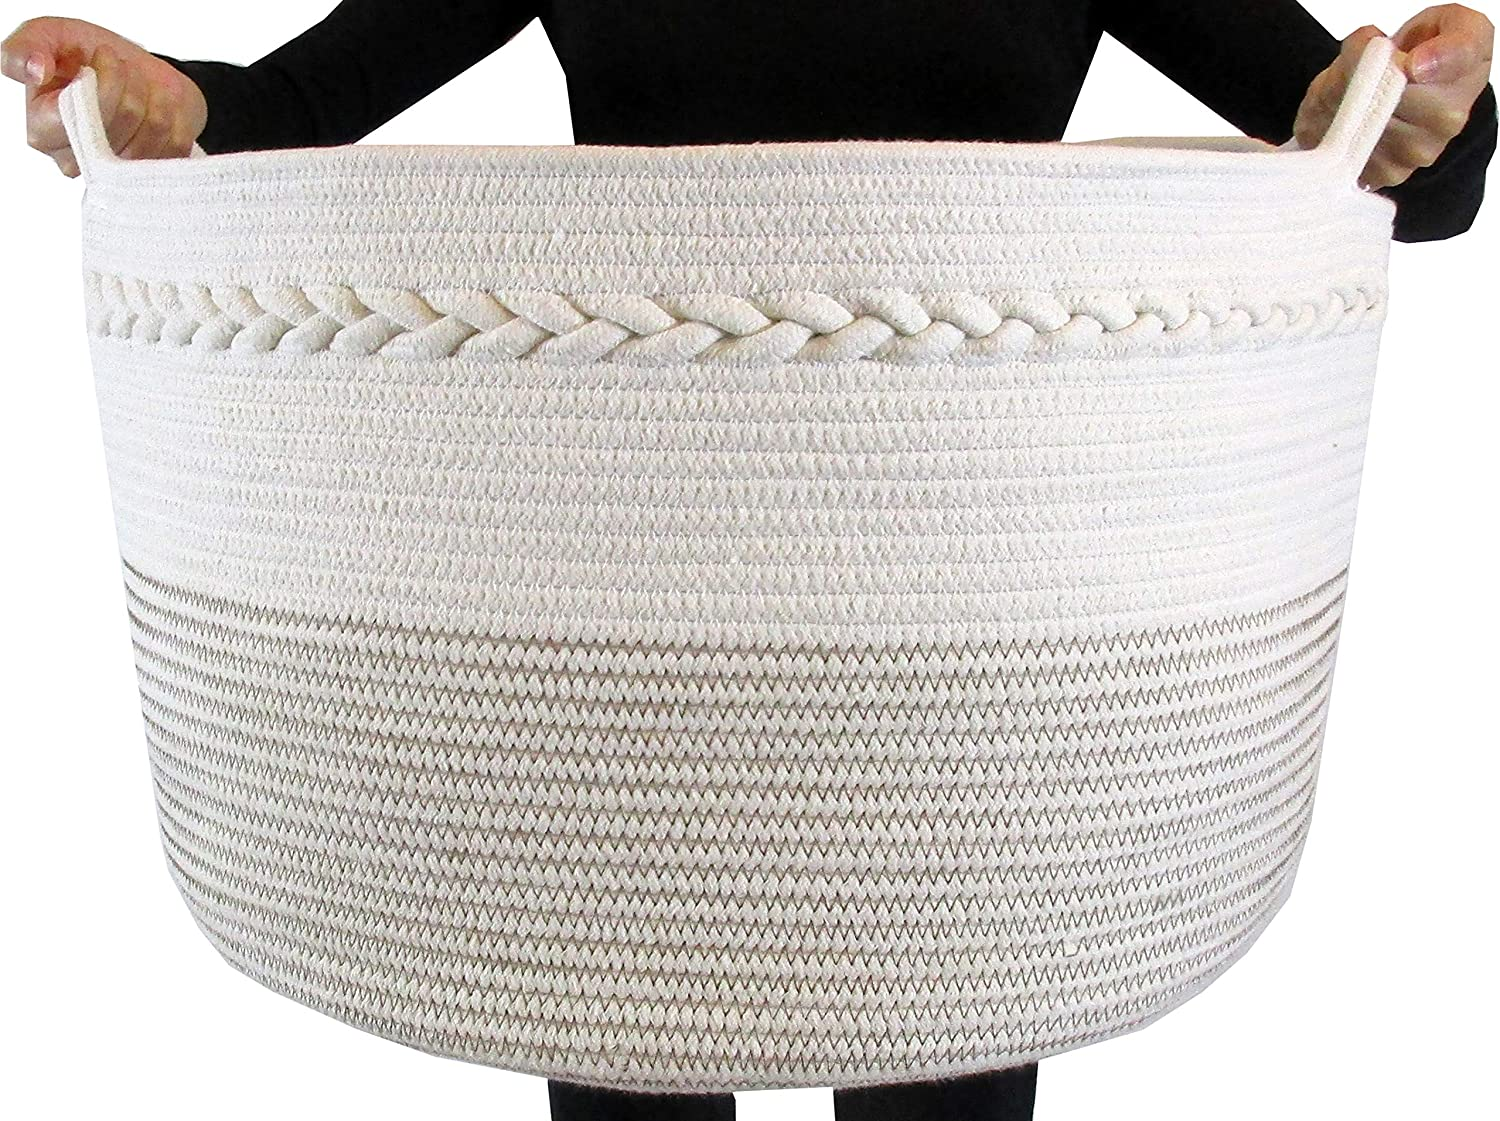 "FRONT ARCH Cotton Rope Storage Basket - Decorative Woven Basket Great for Large Laundry Basket, Blanket Basket, Laundry Hamper, Kids & Babies Toy Basket, Toy Bin, XXL 20""X 13.5"""